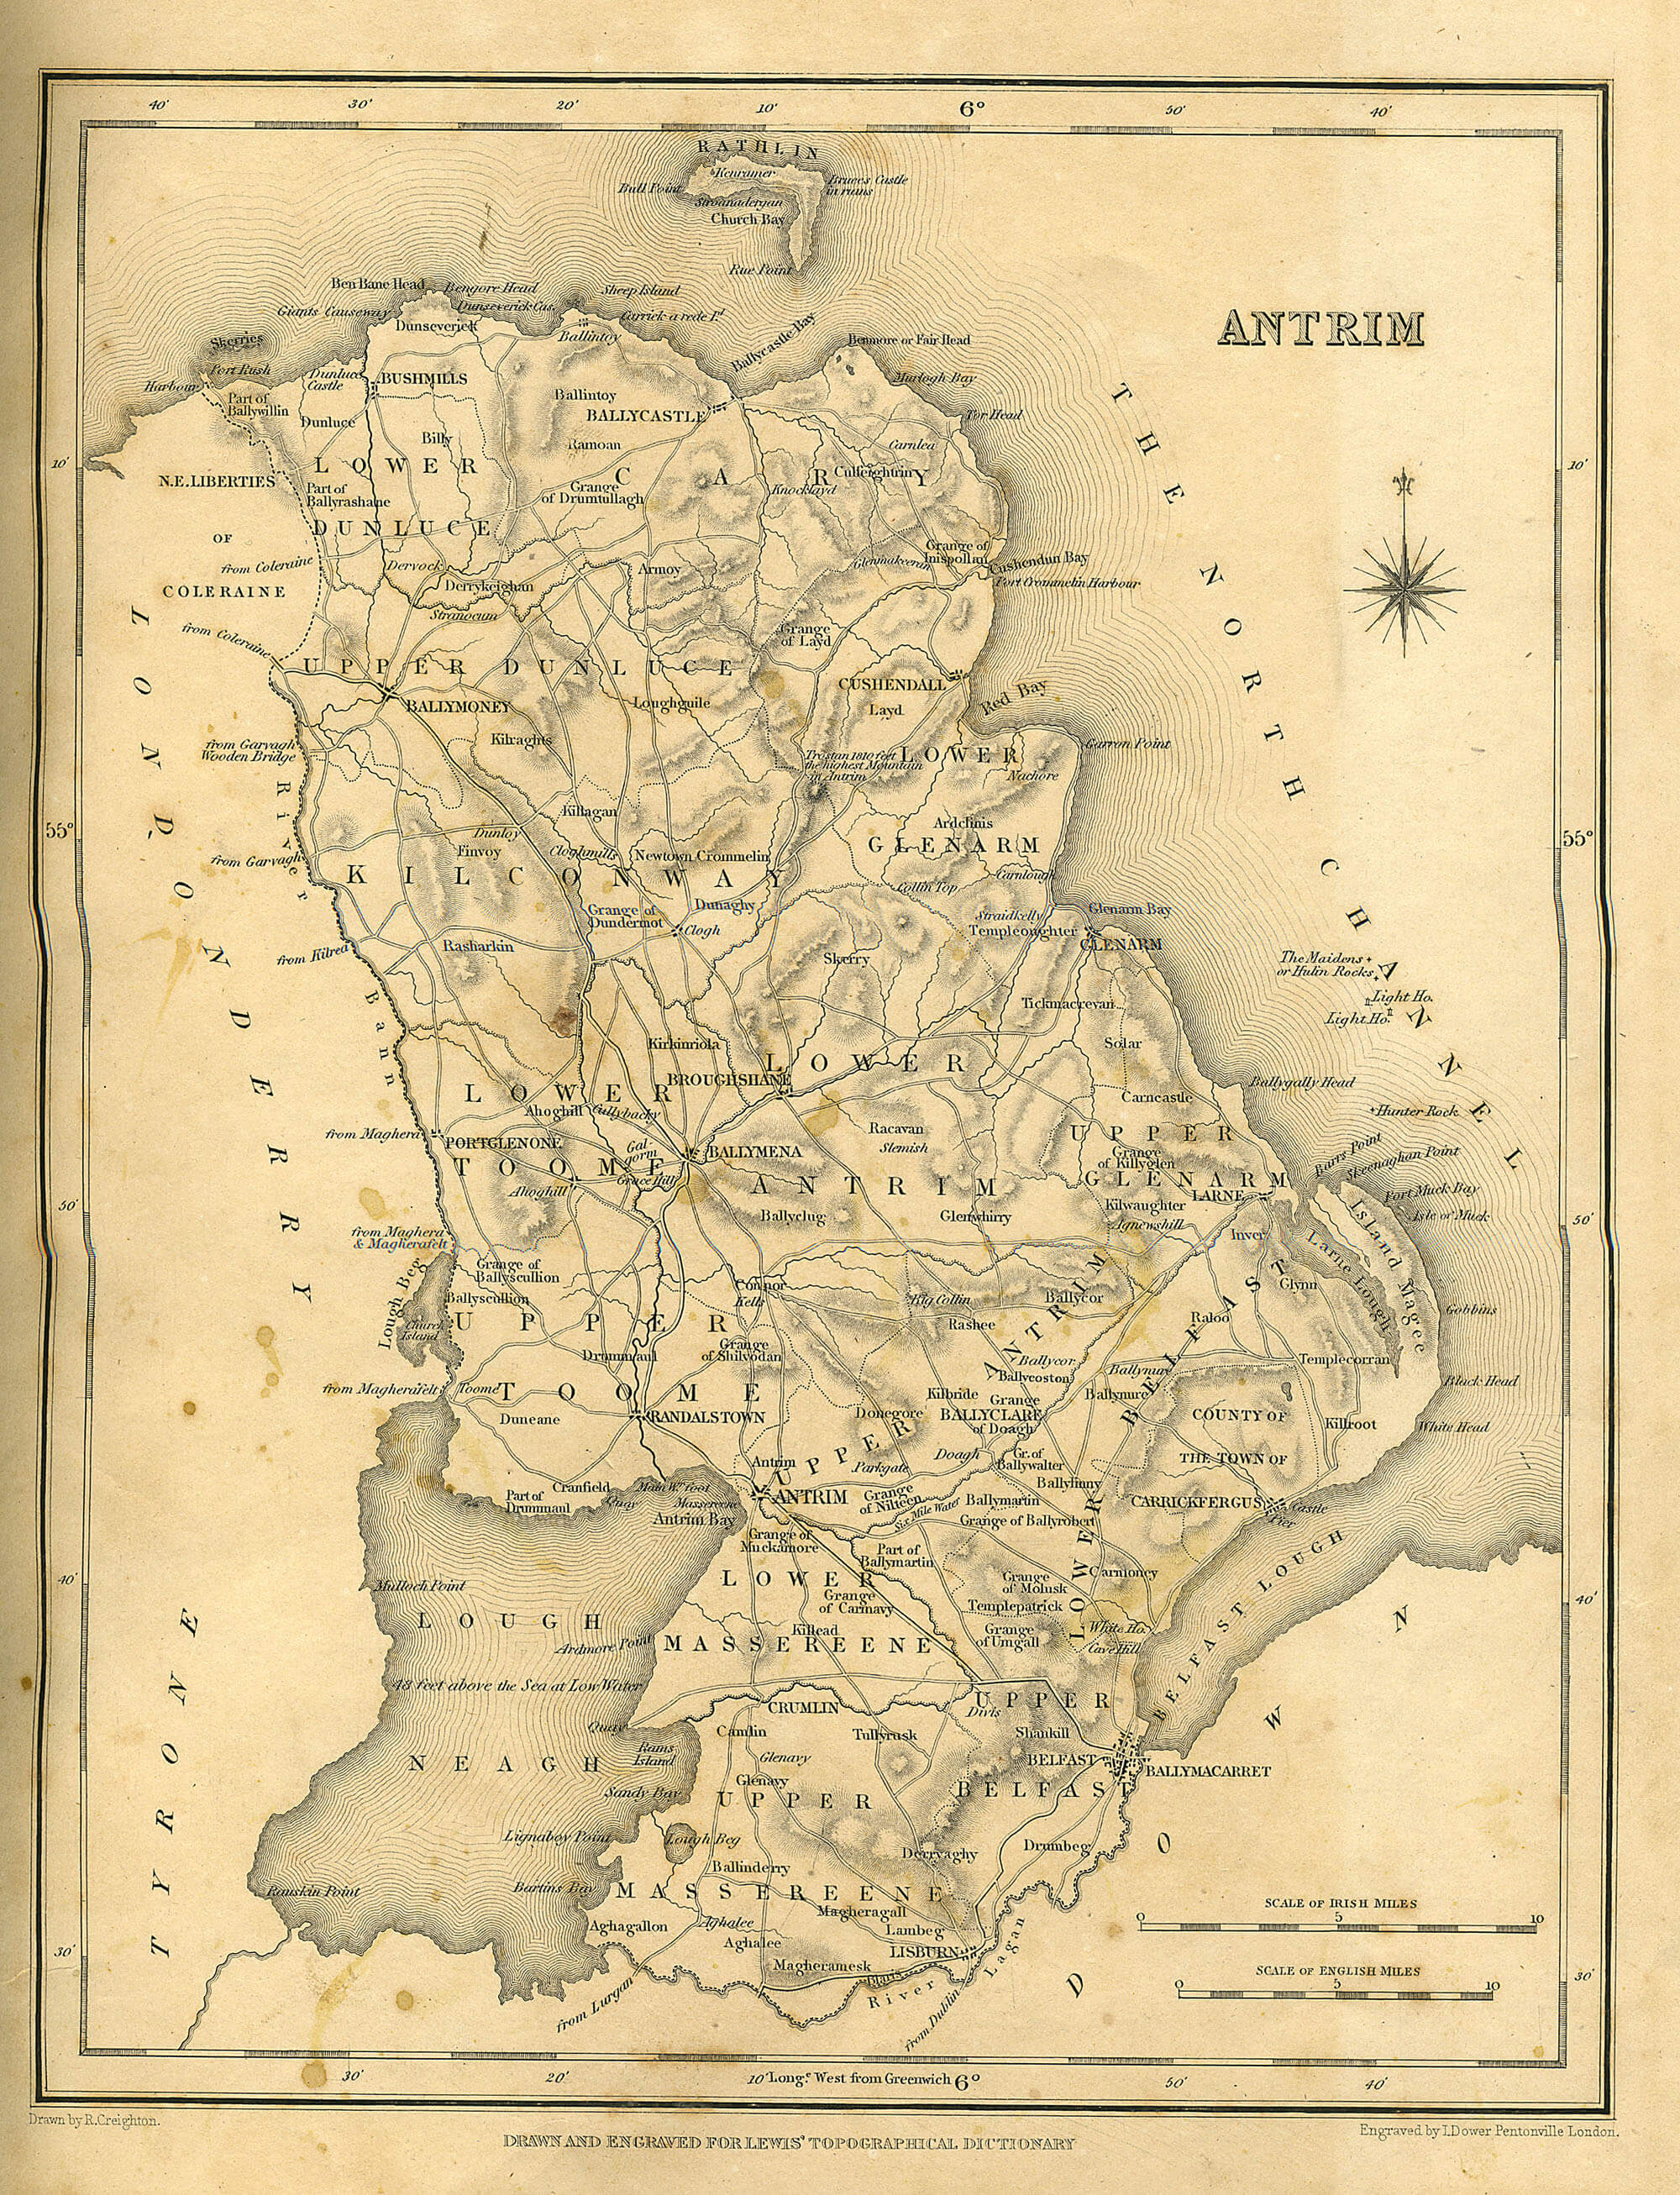 Map Of Dublin 6 Ireland.Ireland Counties Samuel Lewis 1837 A 17 L Brown Collection